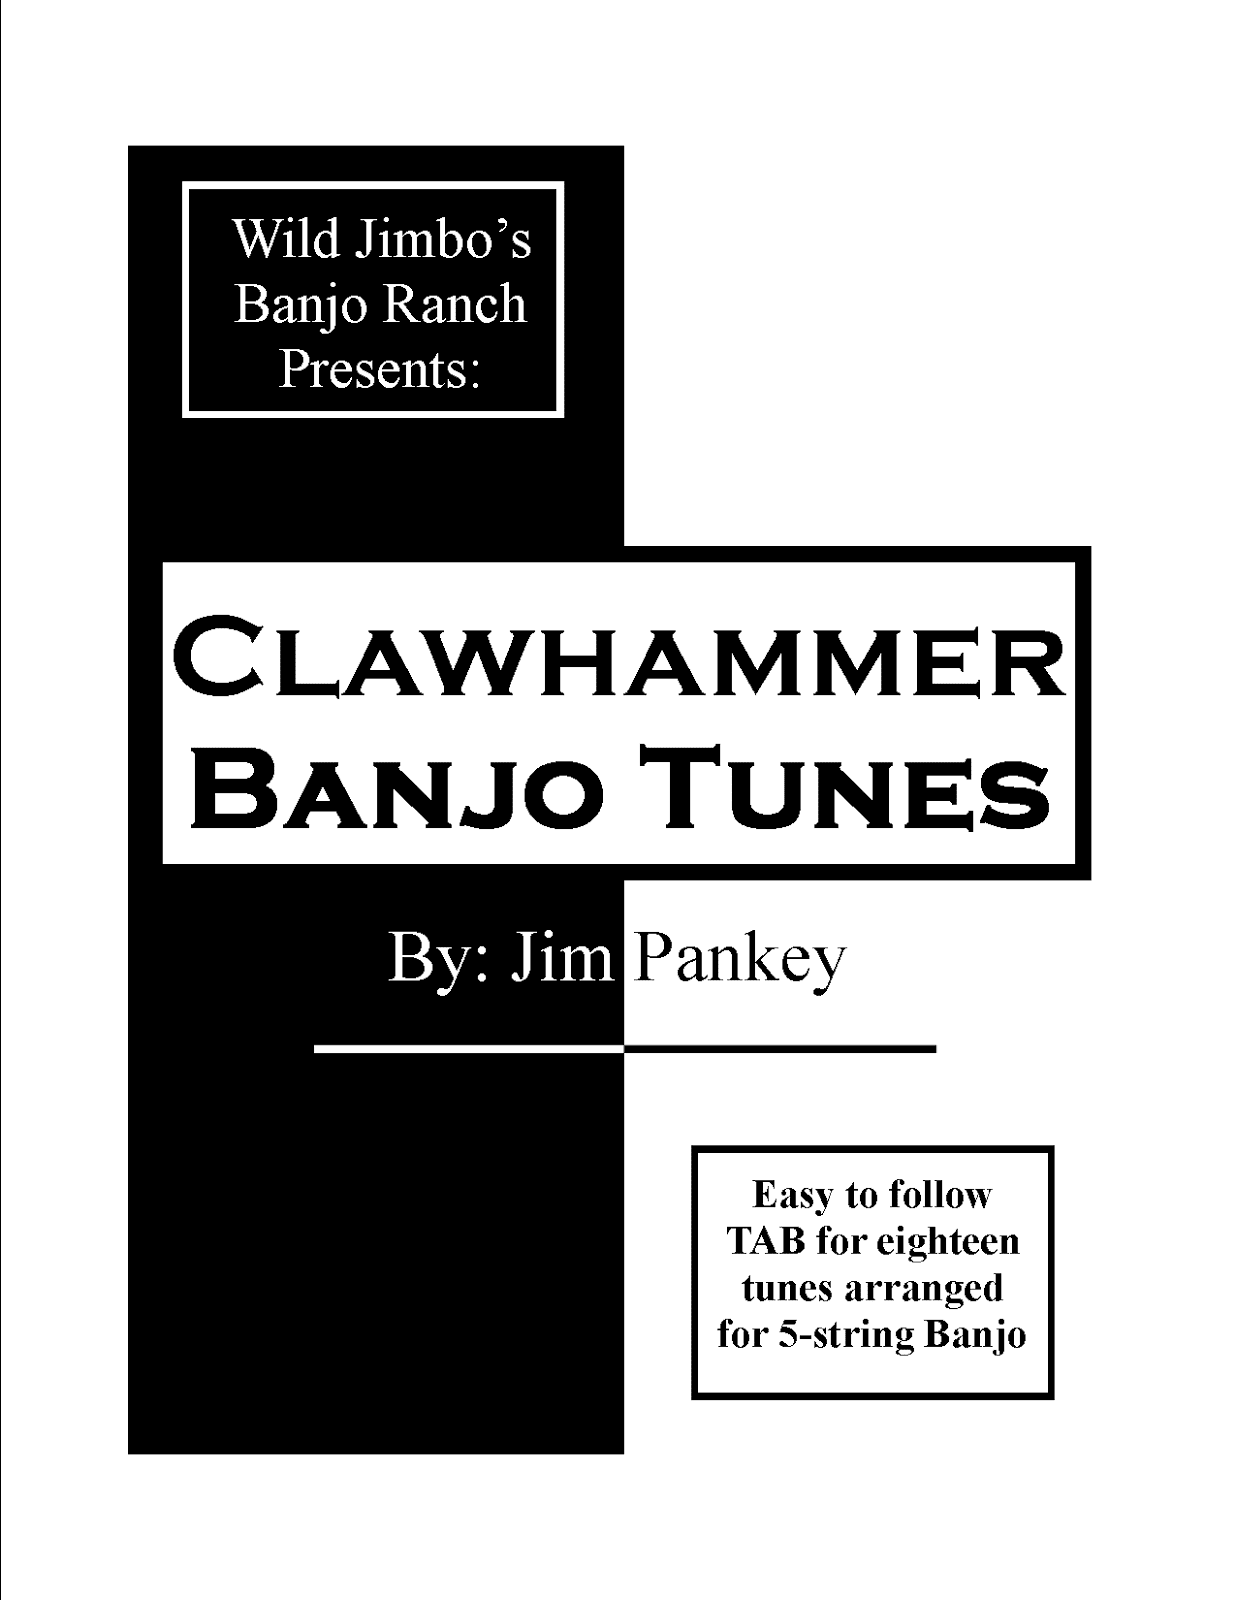 Wild jimbos banjo ranch clawhammer banjo tunes 18 tunes and chord charts for g modal double c and f tuning hexwebz Image collections